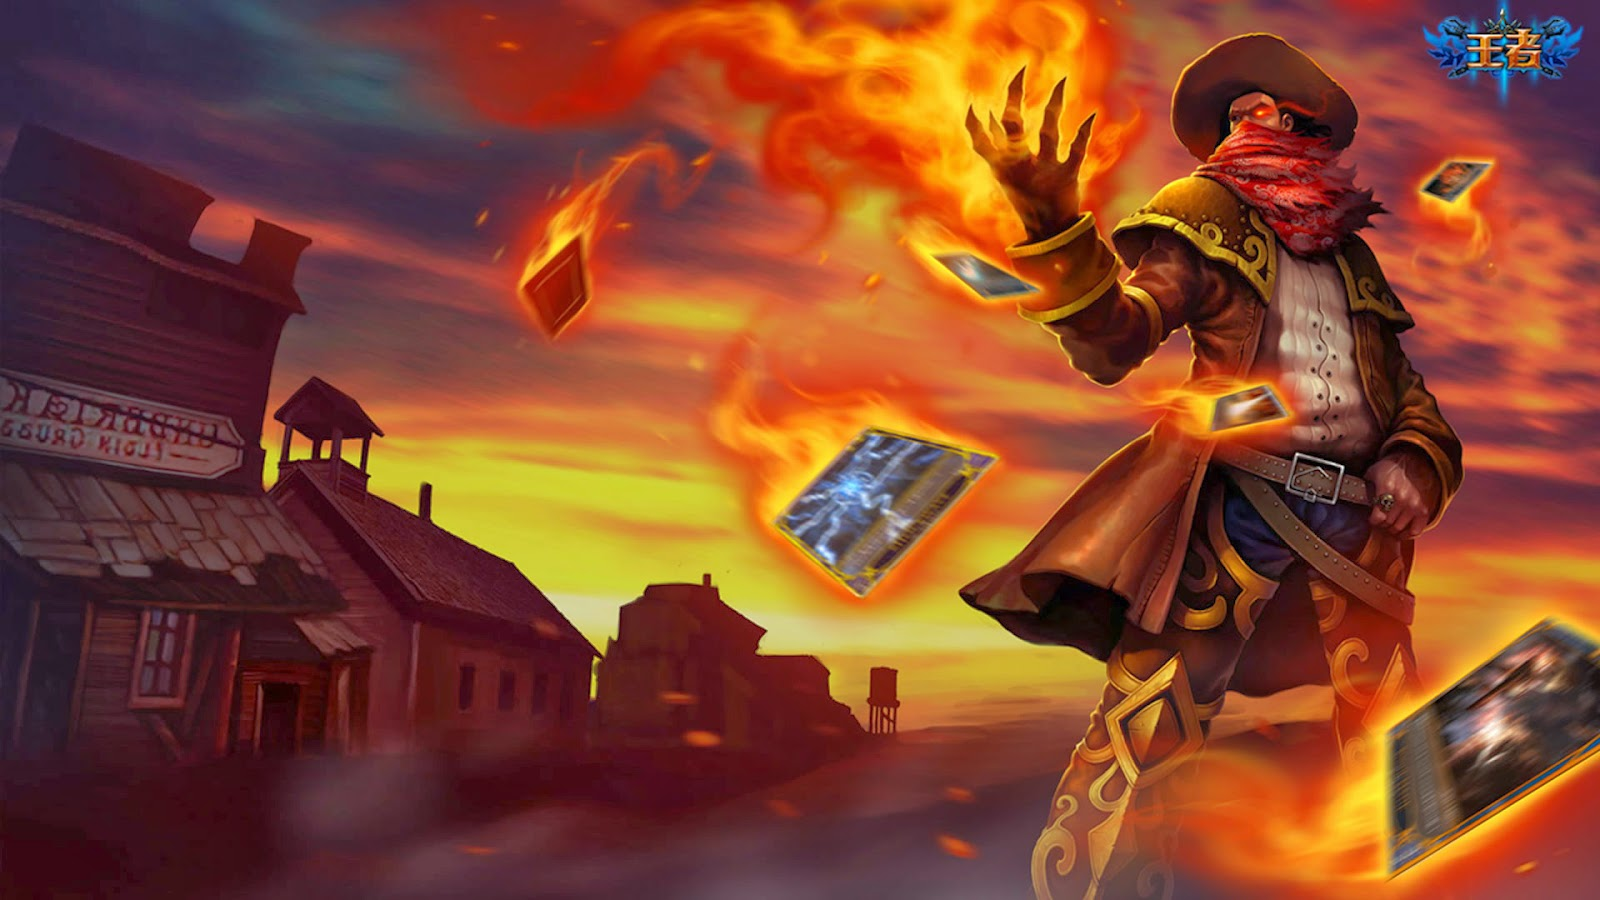 IYH37 Twisted Fate Background   Widescreen Wallpapers 1600x900